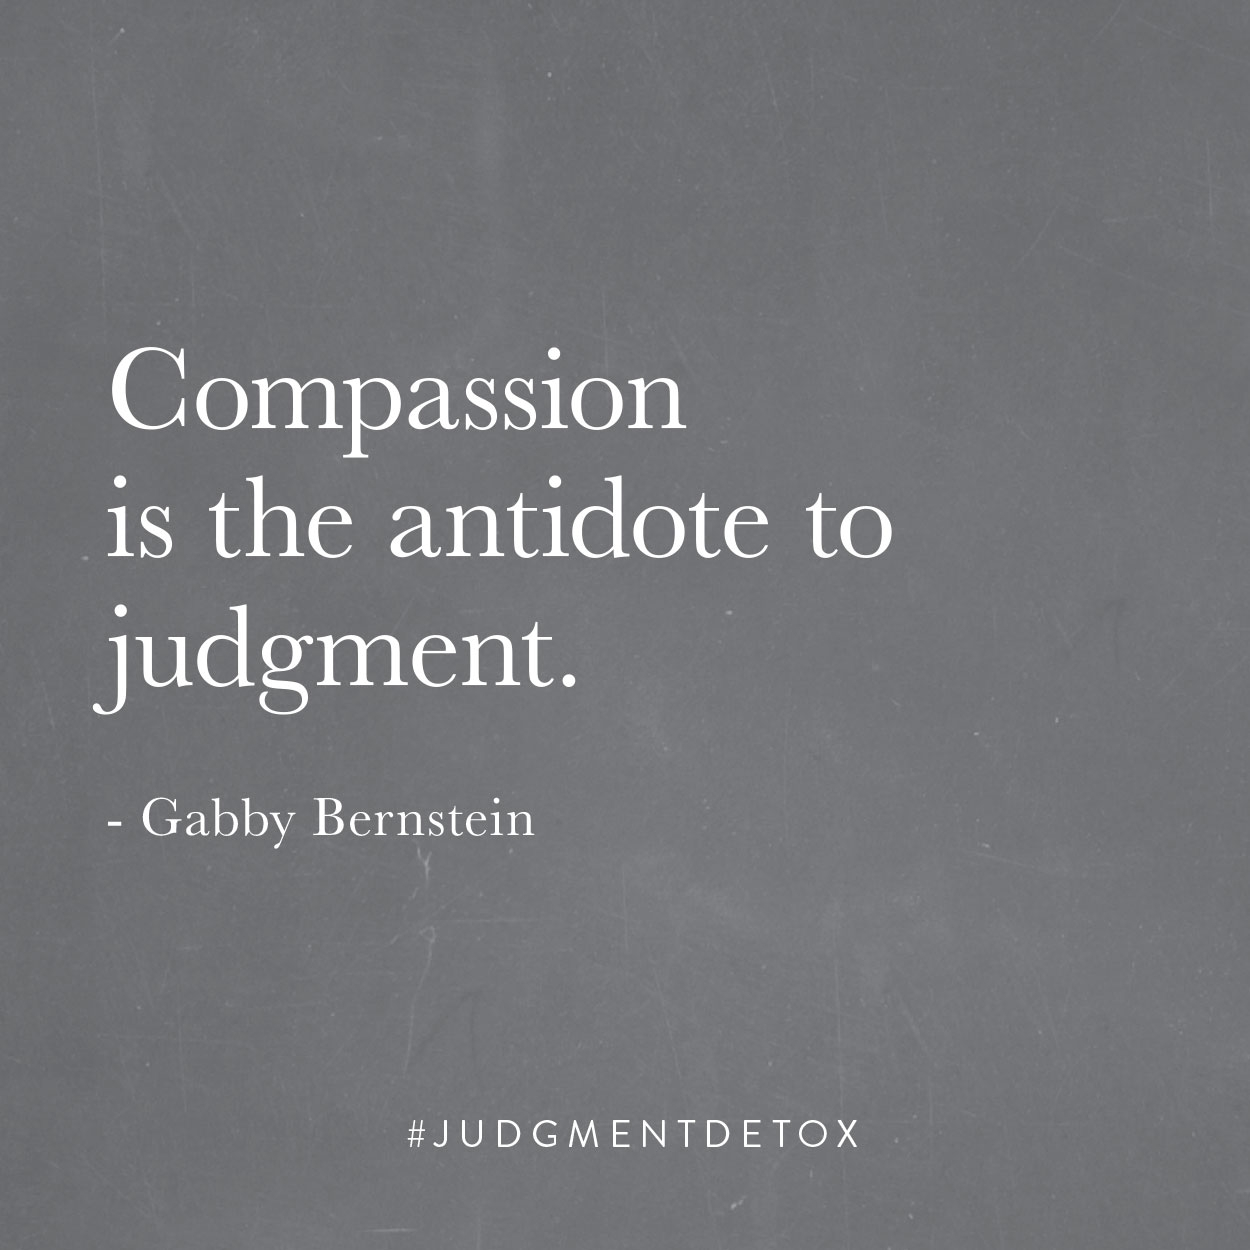 Compassion is the antidote to judgment. | Gabby Bernstein quote from Judgment Detox